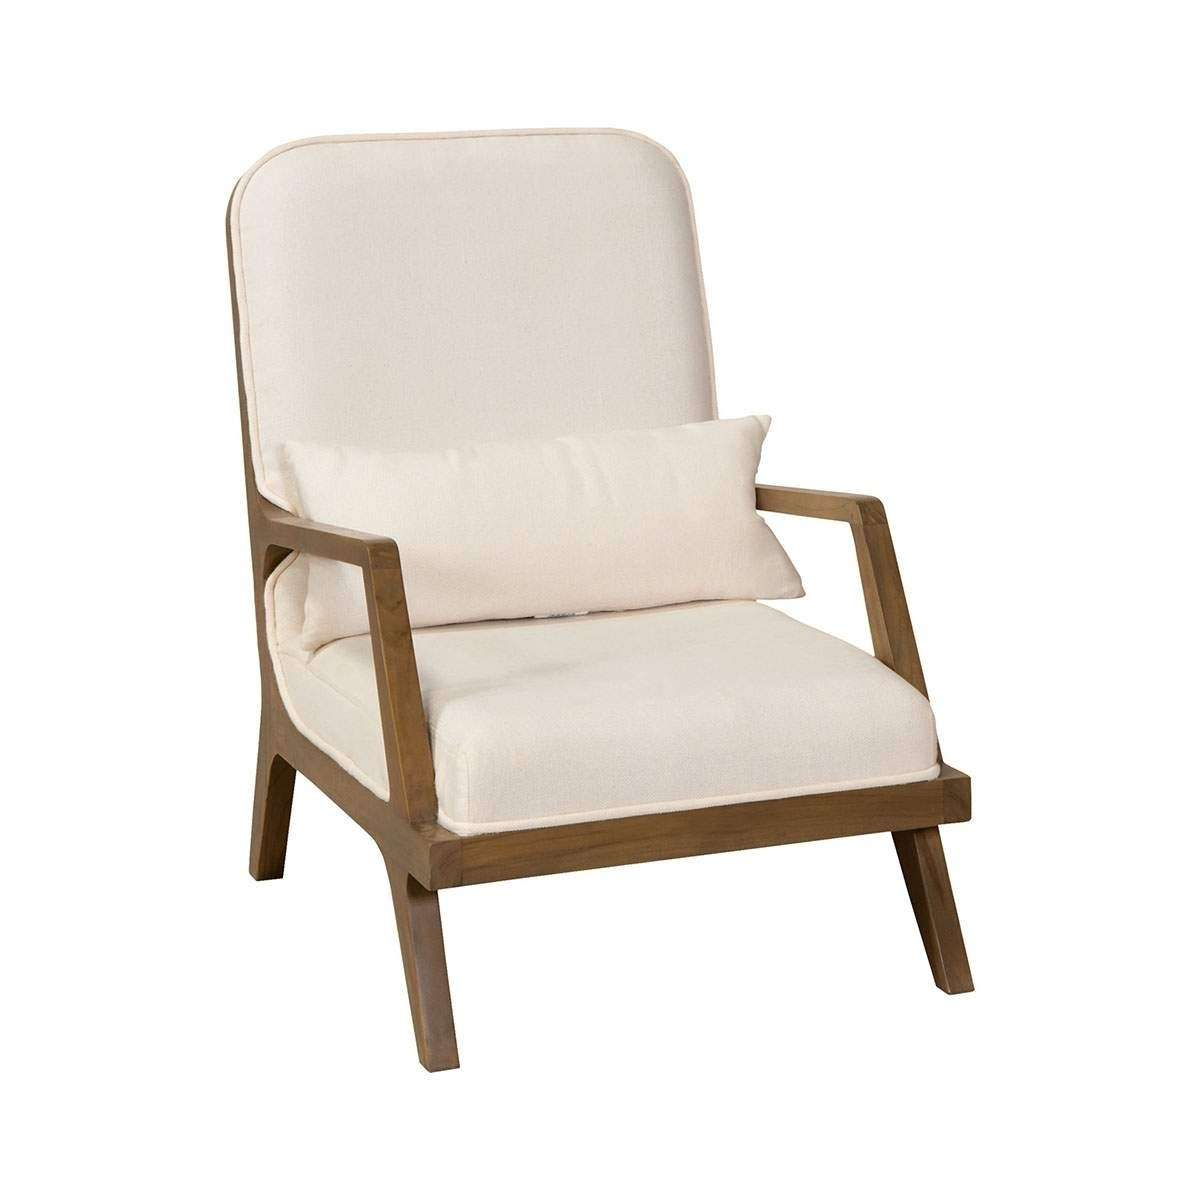 Patricia Chair in Euro Teak Oil